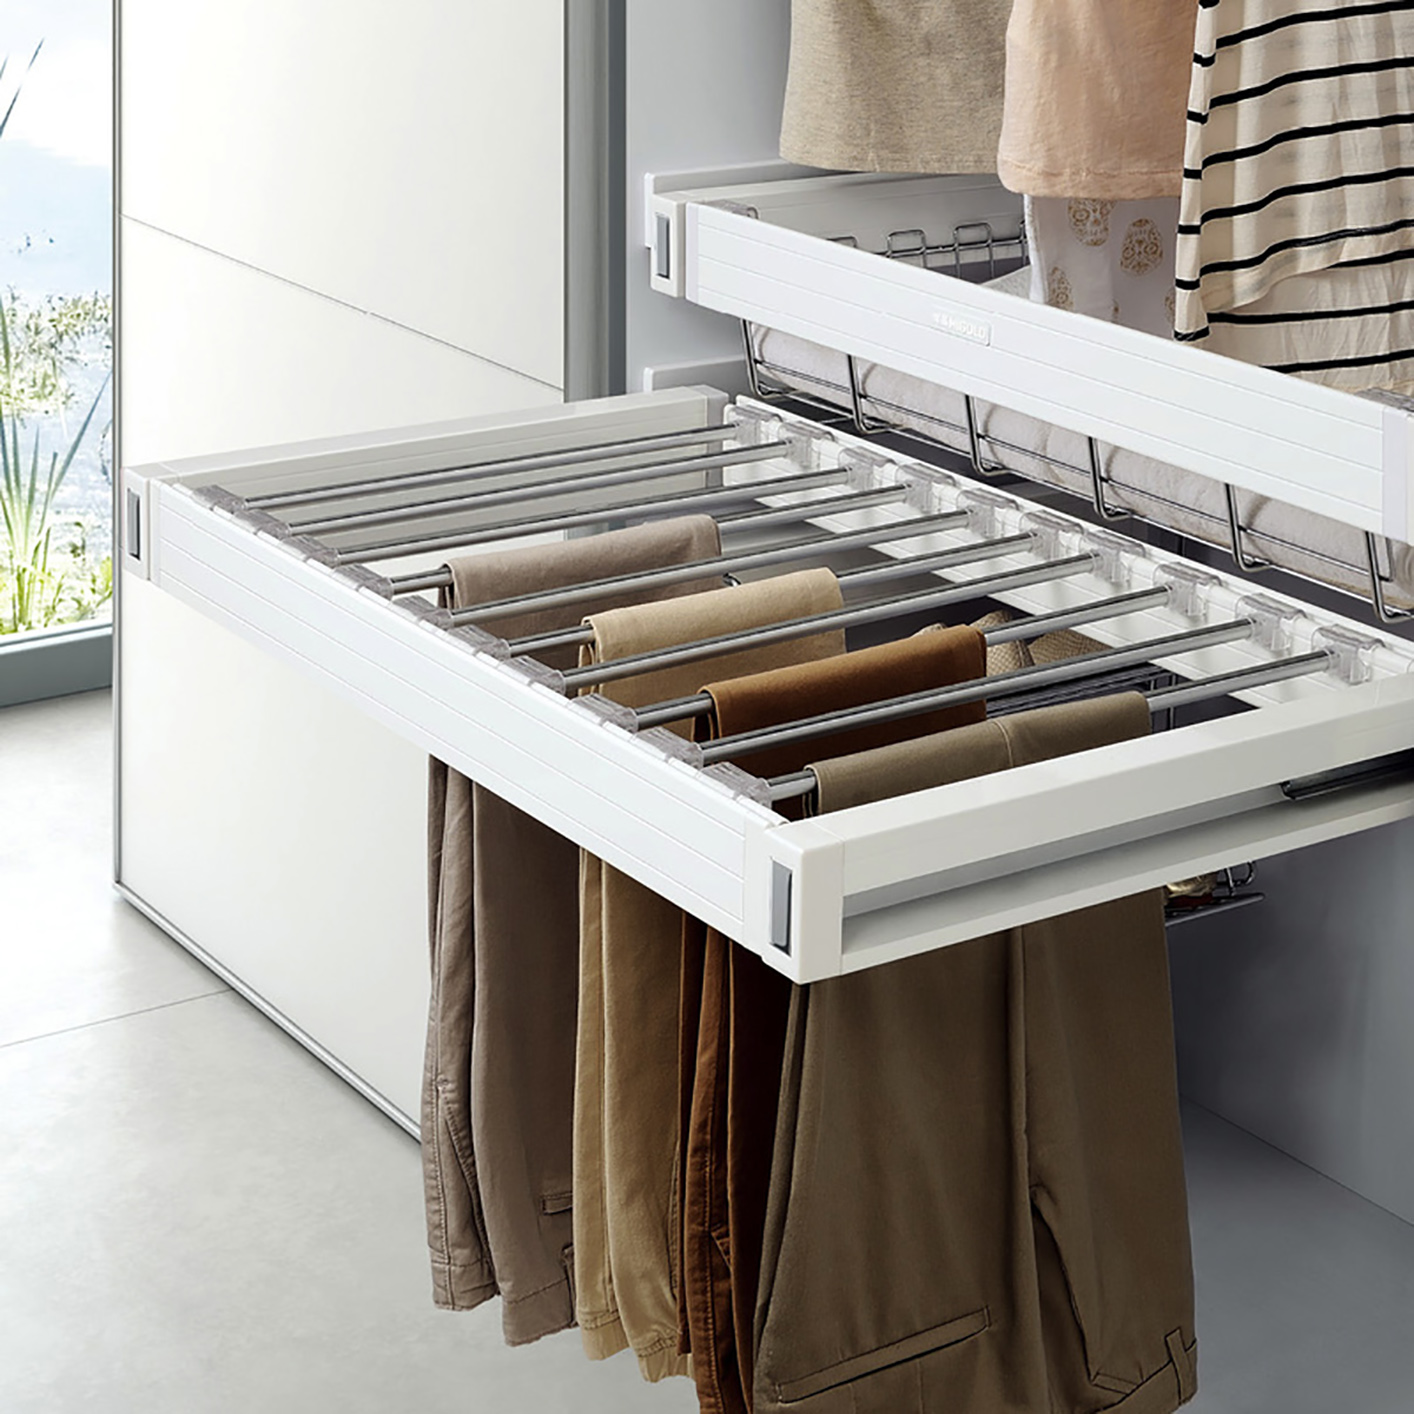 Cabinets Closets: Symmetry Pant Rack Pull-Out Soft Close (600mm Cabinet